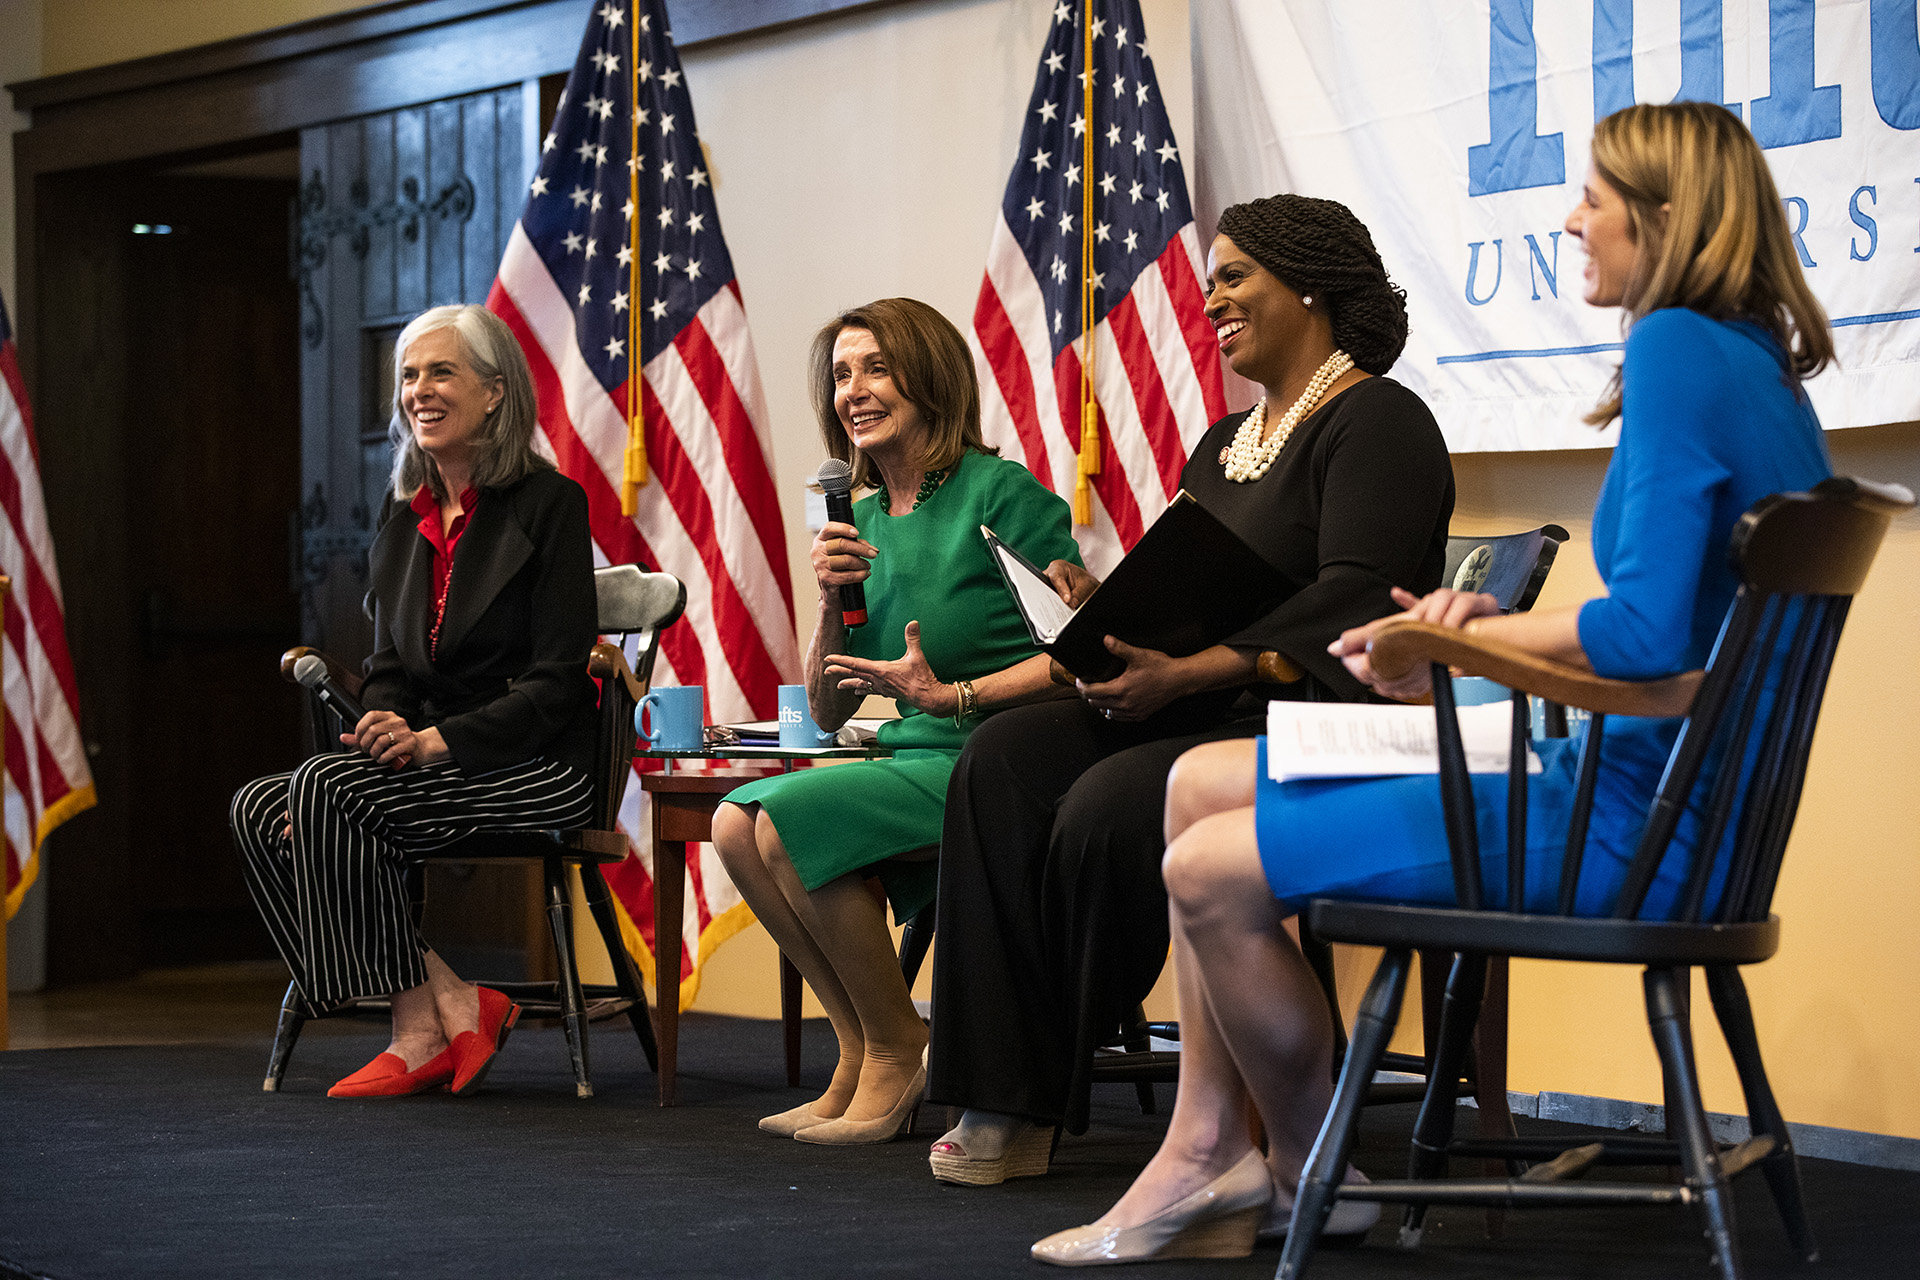 House Speaker Nancy Pelosi and Congresswomen Katherine Clark, Ayanna Pressley, and Lori Trahan speaking at Tufts